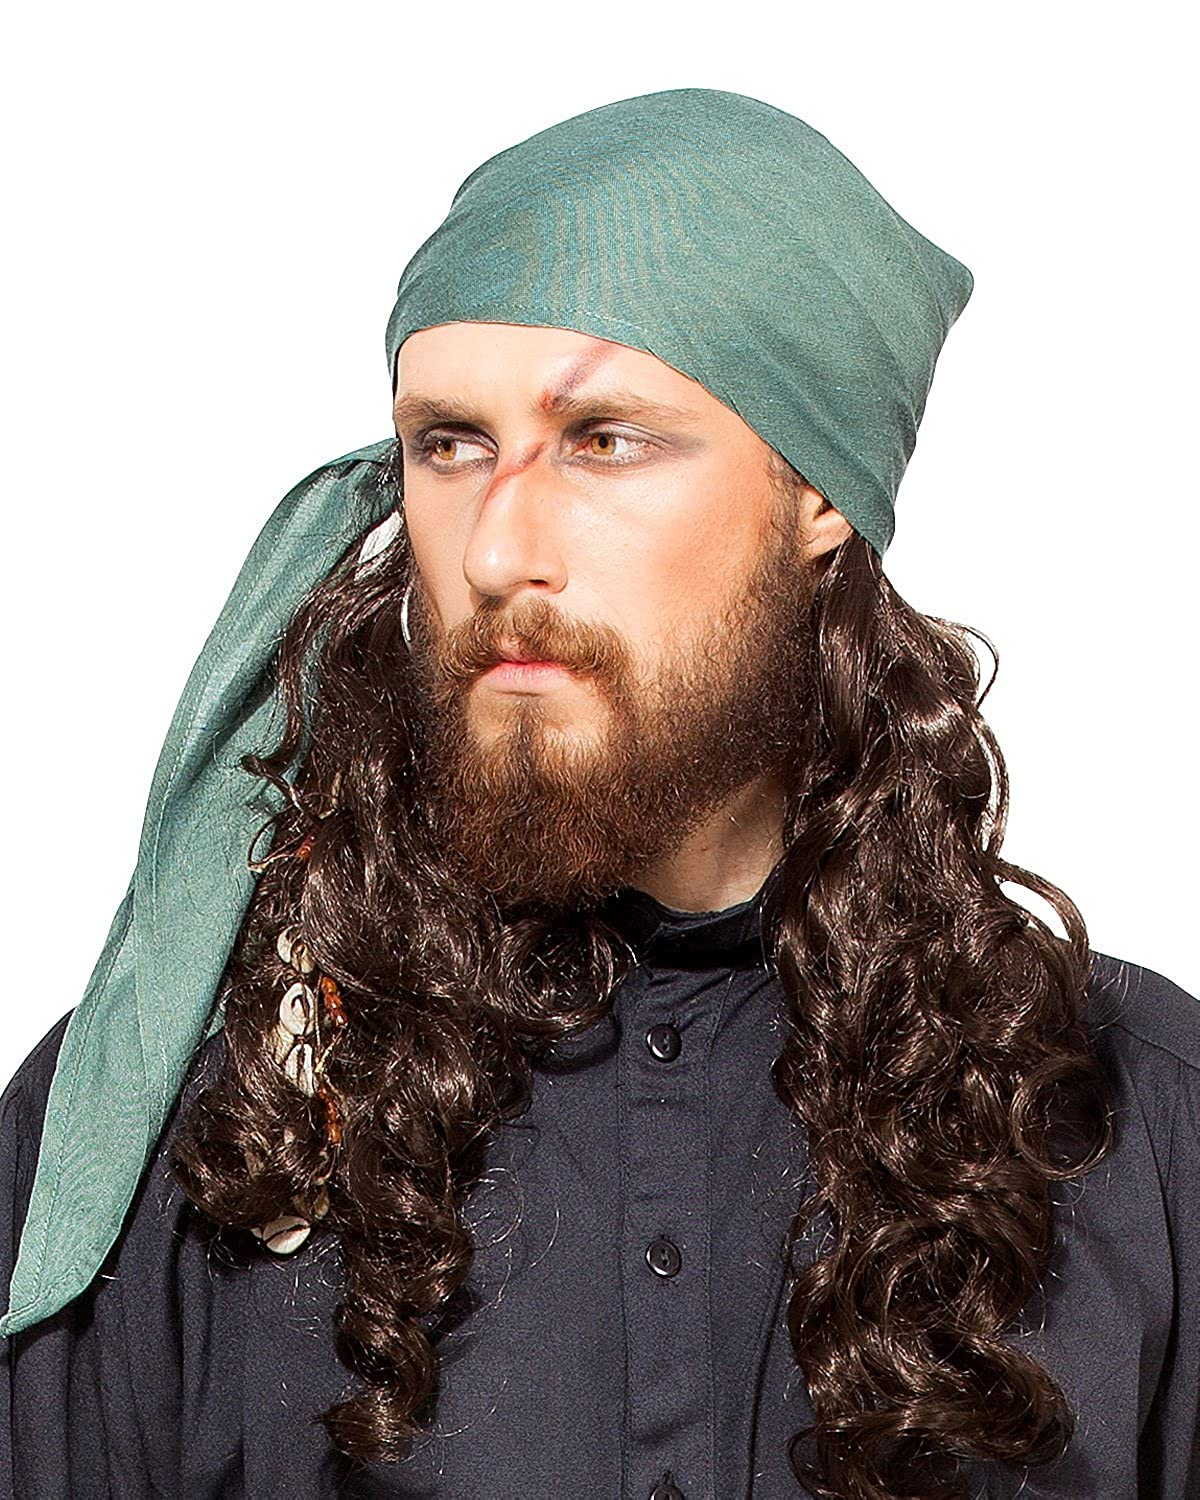 Deluxe Adult Costumes - Pirate medieval renaissance green linen triangle bandana